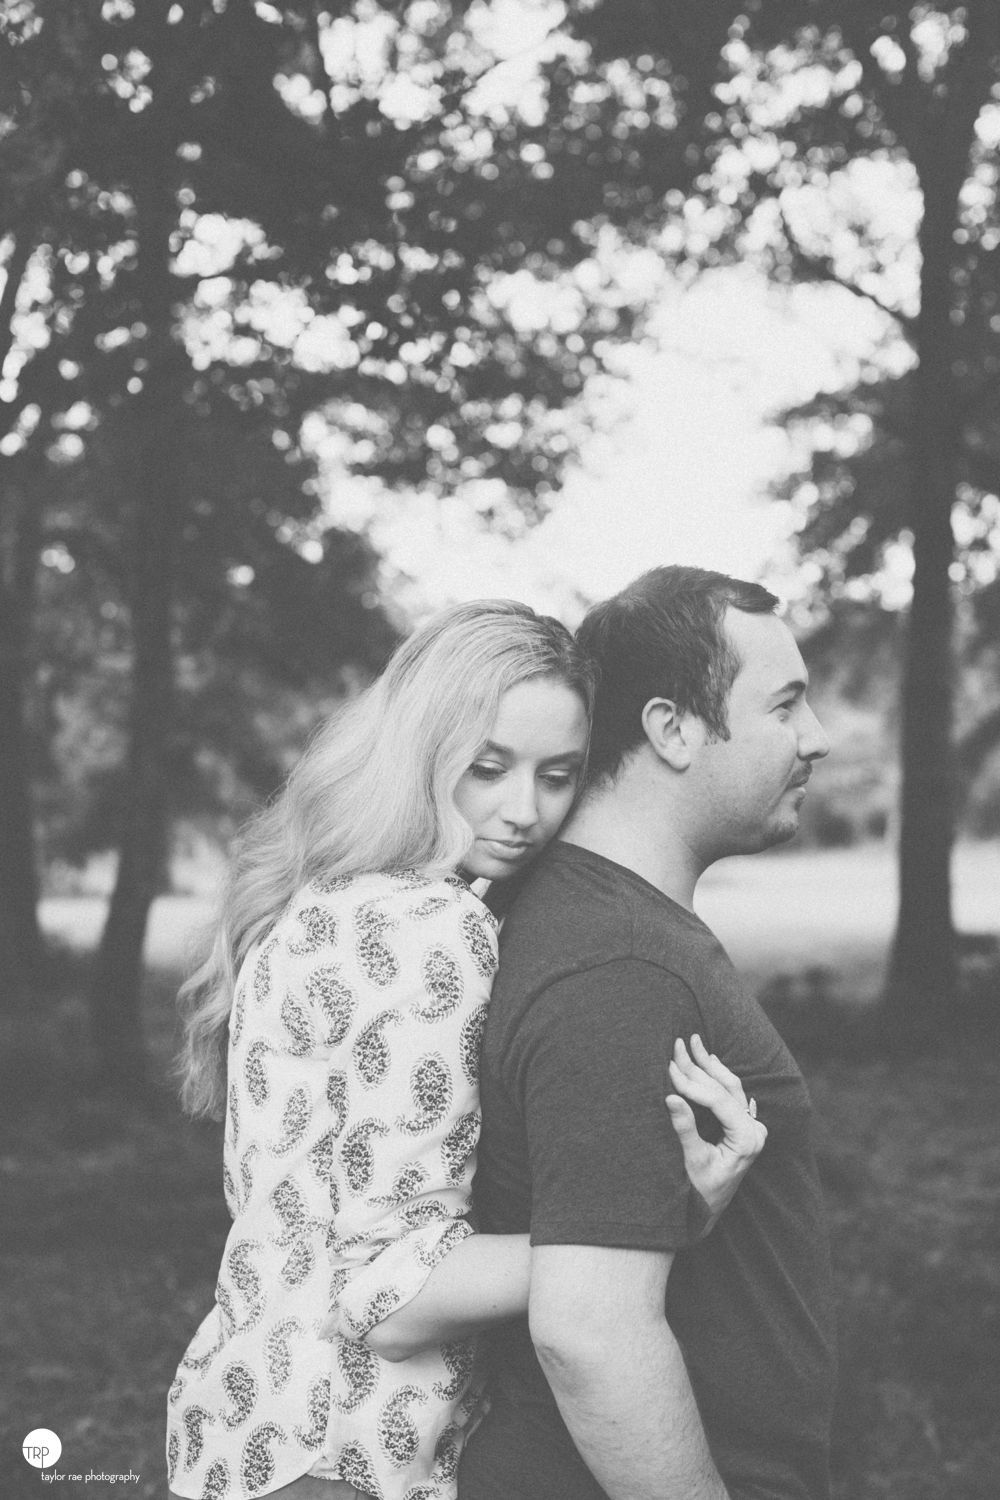 cuddle.  Engagement session by Taylor Rae Photography.